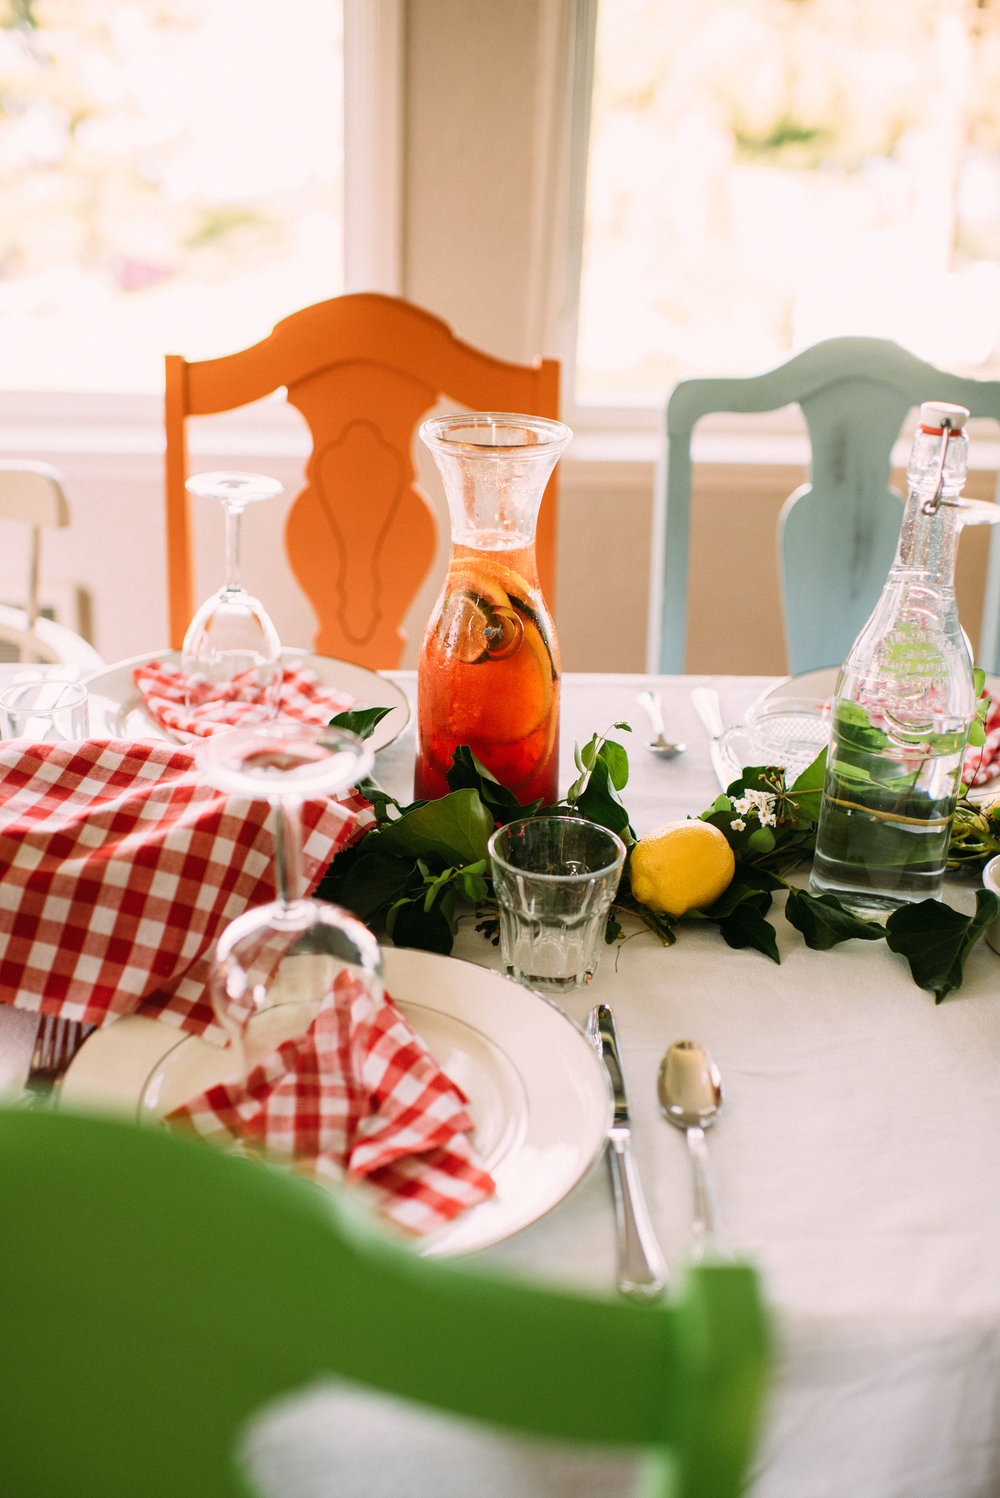 Placing drinks and water bottles down the table allow your guests to easily help themselves during the meal : plus they add a great splash of color and decor to your table scape!